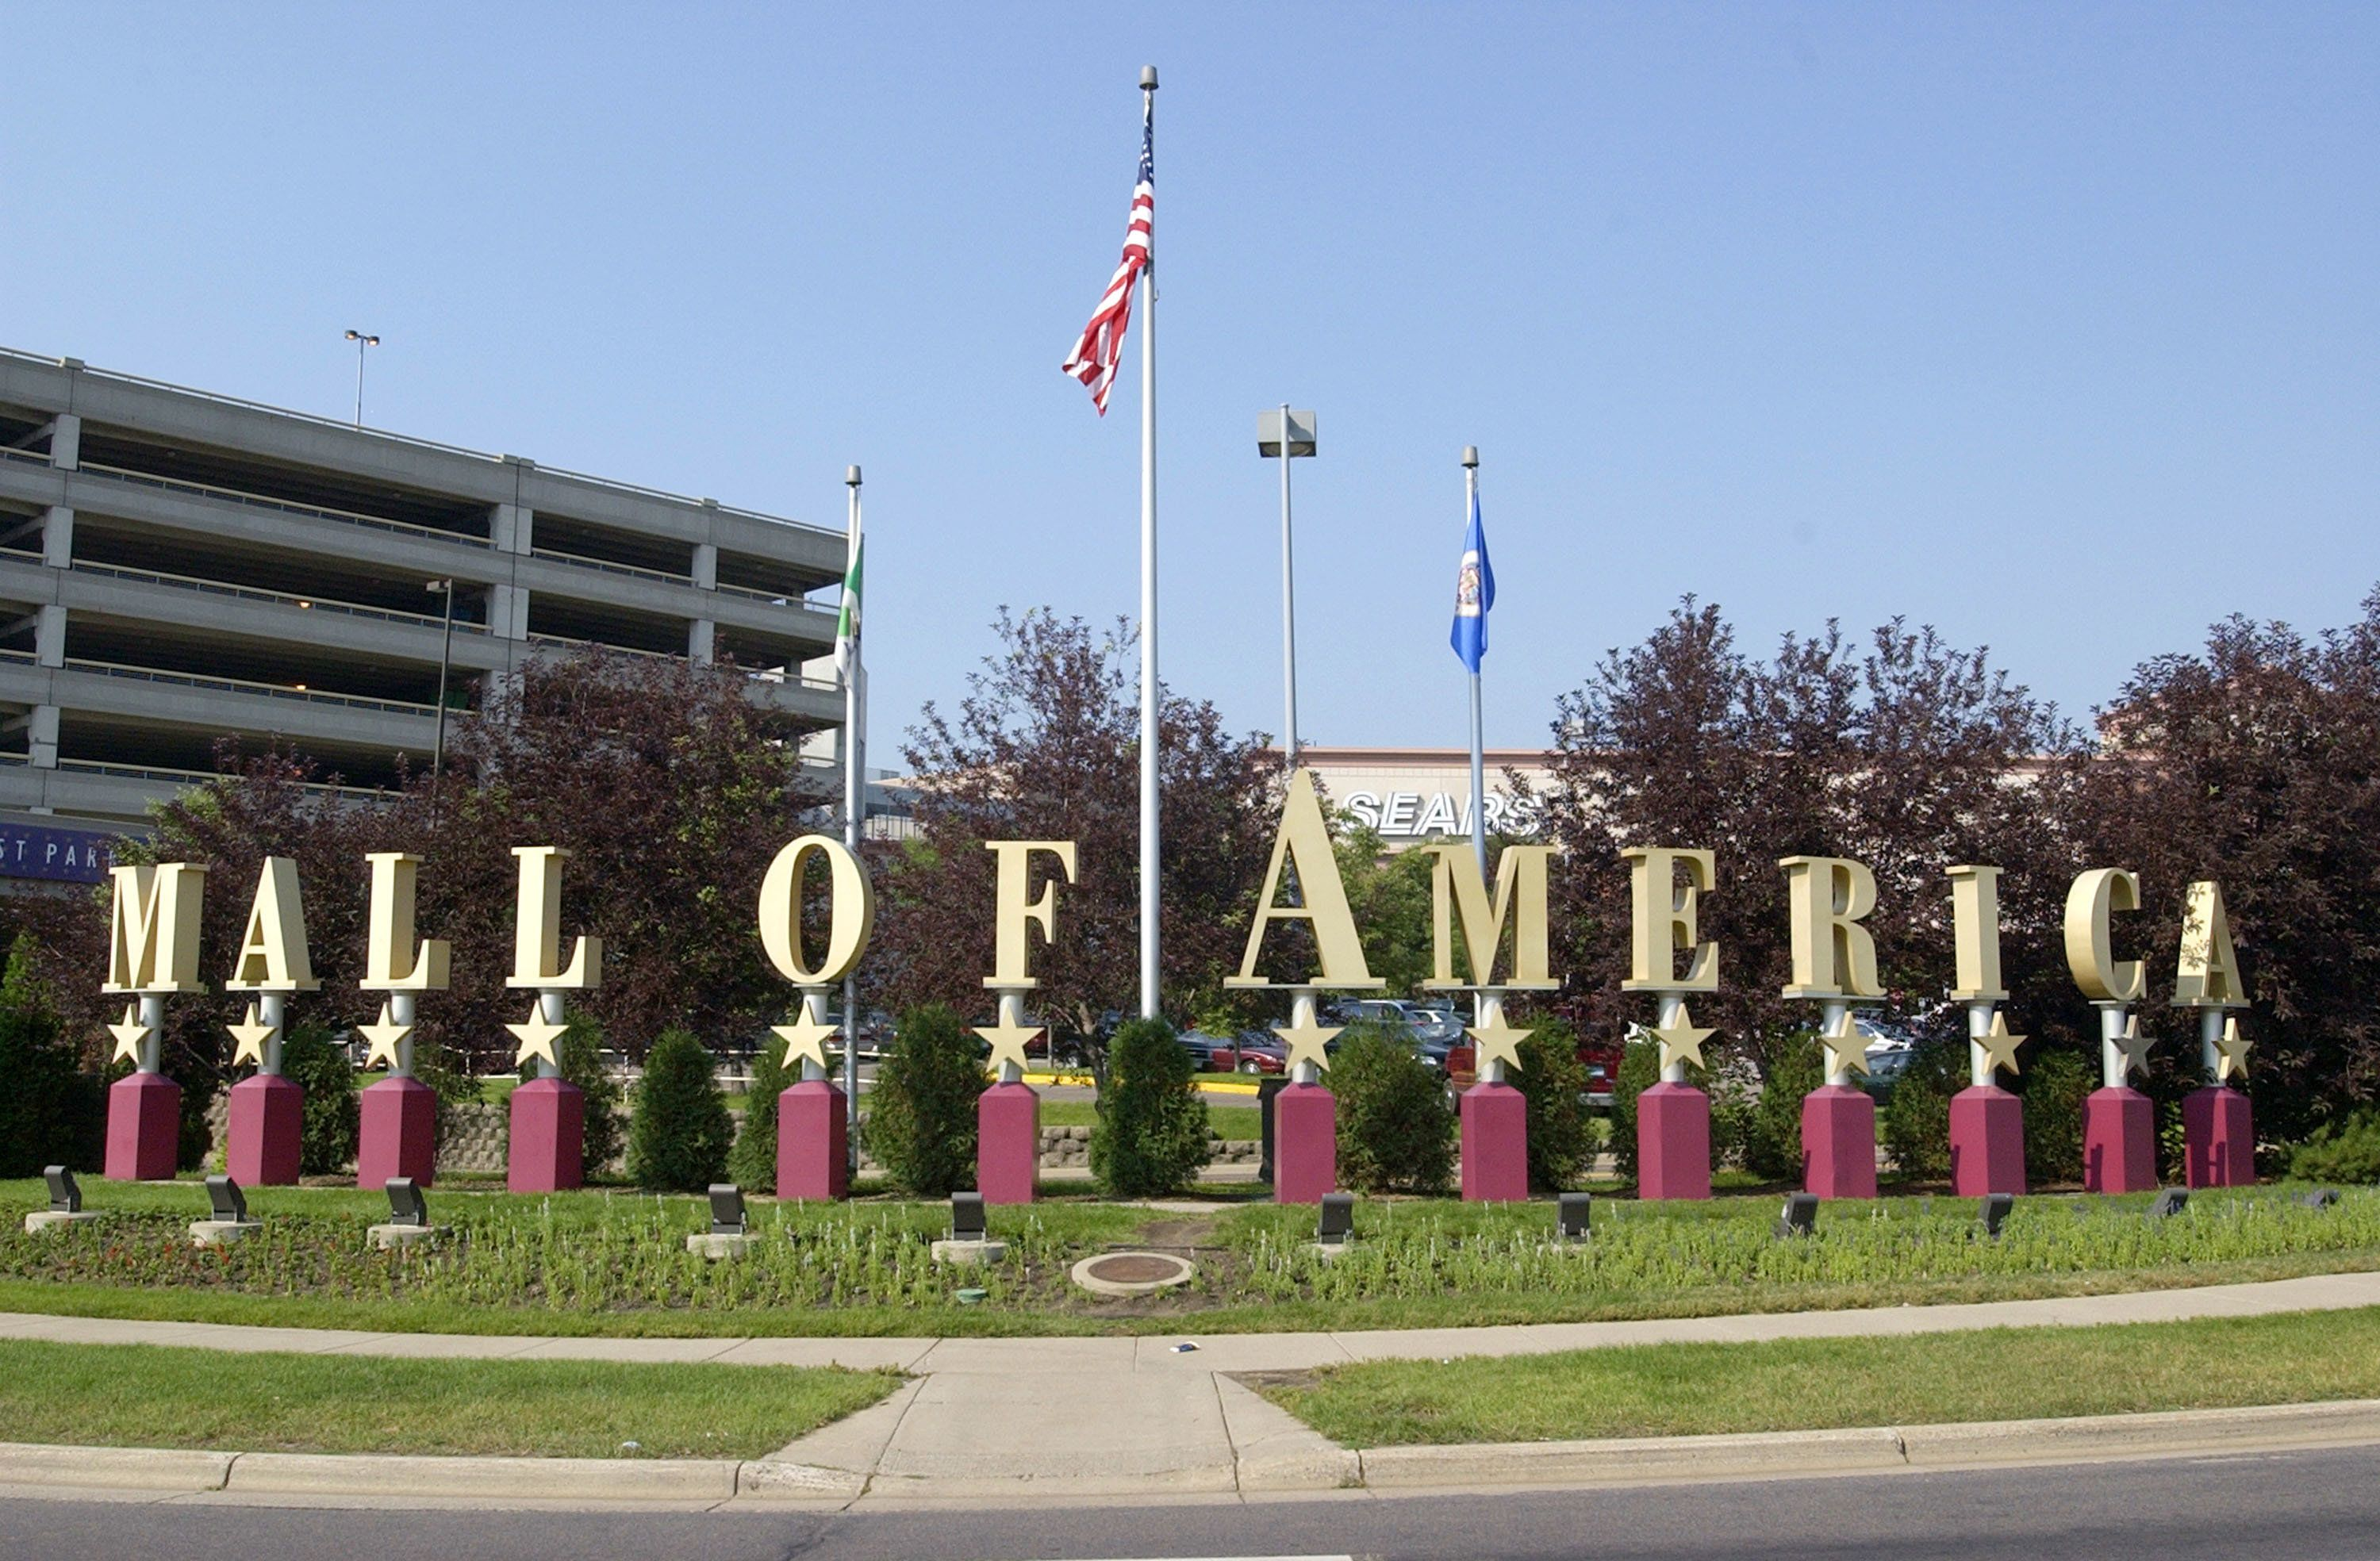 BLOOMINGTON, MN - JULY 16:  (FEATURE STORY ON THE MALL OF AMERICA, 12 OF 15)  A  sign advertises the Mall of America July 16, 2002 in Bloomington, Minnesota. The Mall of America is the largest shopping mall in the United States, seeing between 35 and 42 million visitors each year and employing more than 12,000 people.  Approximately 520 stores occupy the mall's 4.2 million square feet.  The Mall of America will celebrate its 10th anniversary this August. (Photo by Mark Erickson/Getty Images)